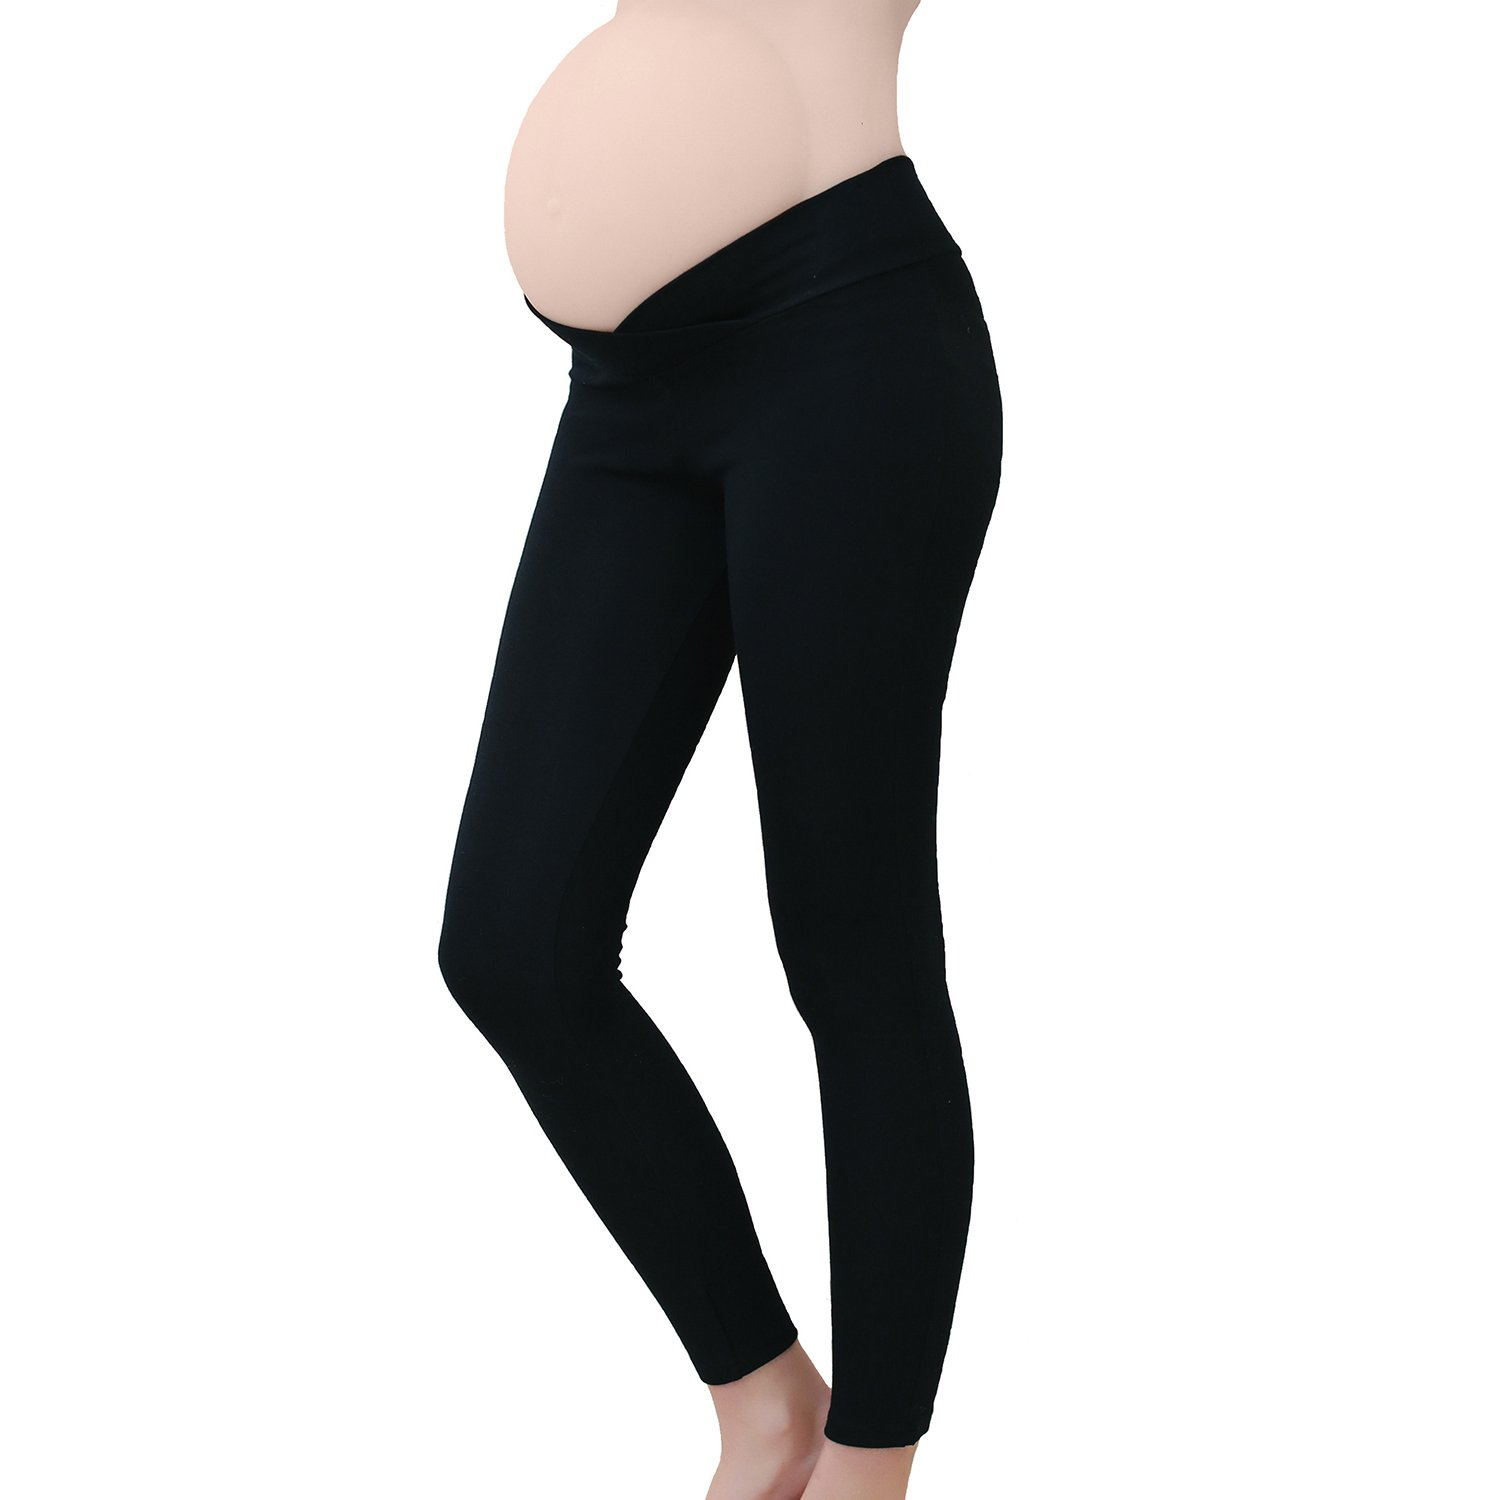 Tremour Cotton Fit Maternity Belly Leggings for Pregnant Women Black 2XL